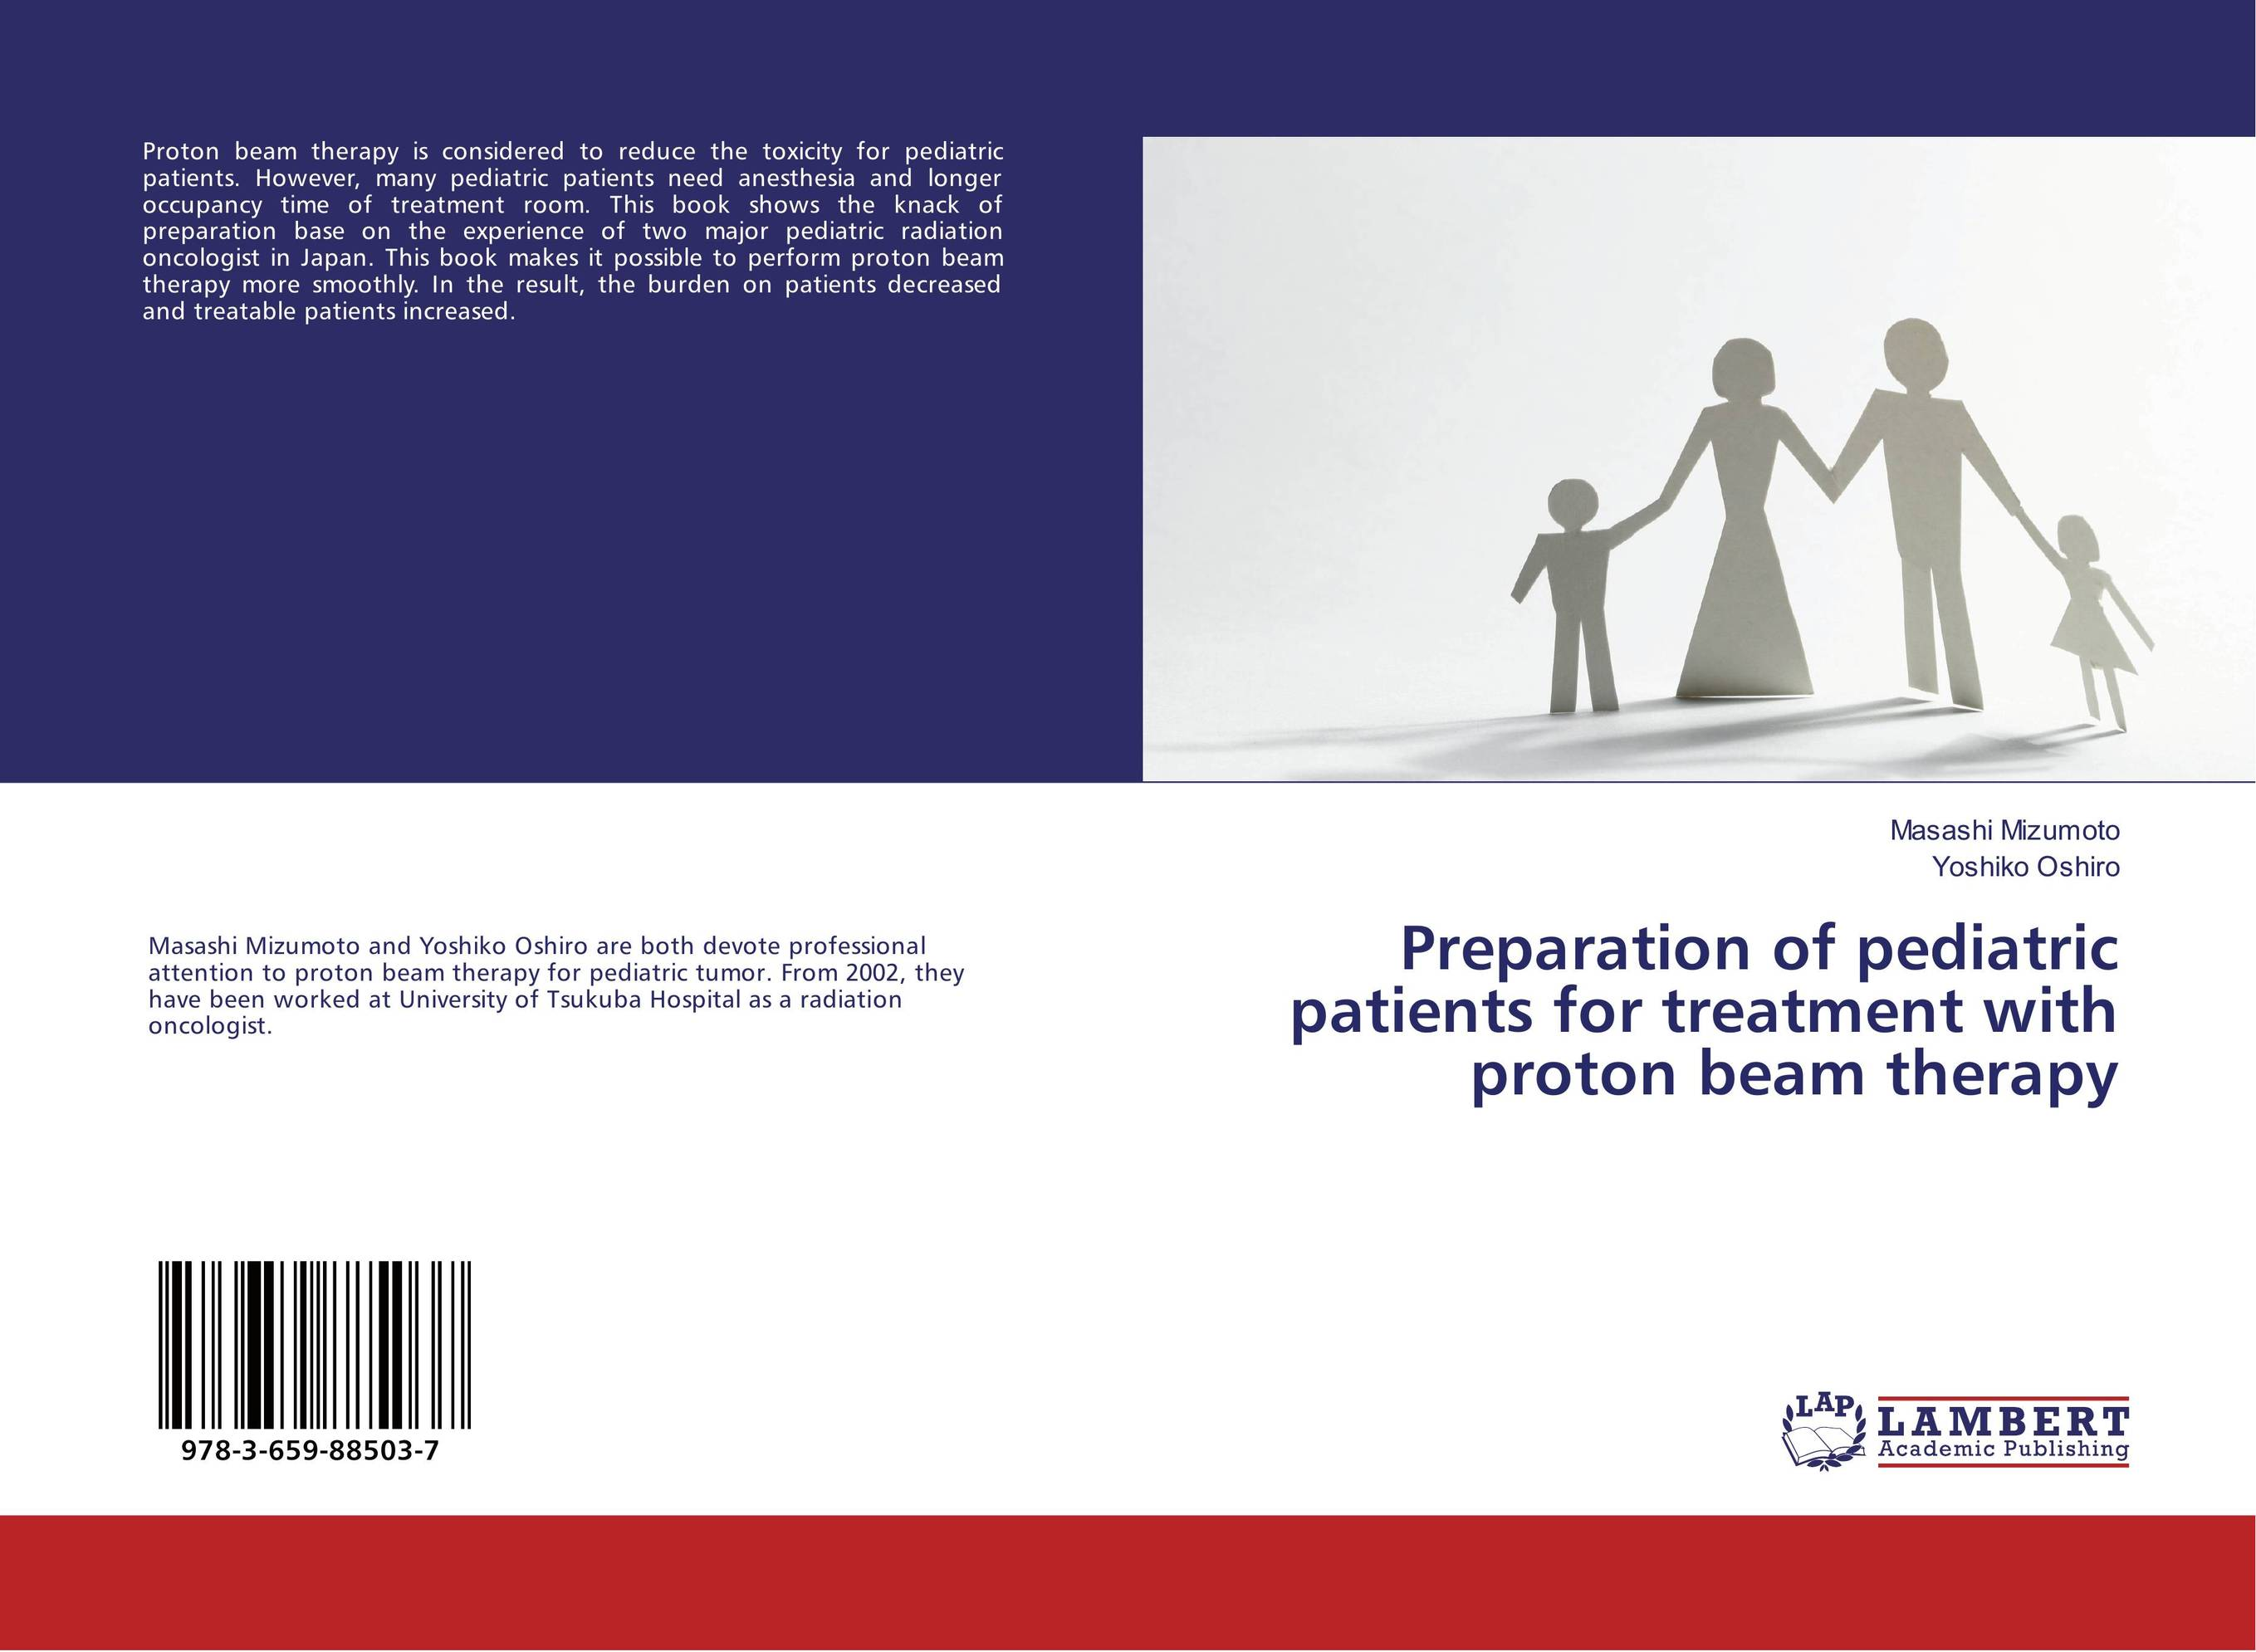 Preparation of pediatric patients for treatment with proton beam therapy